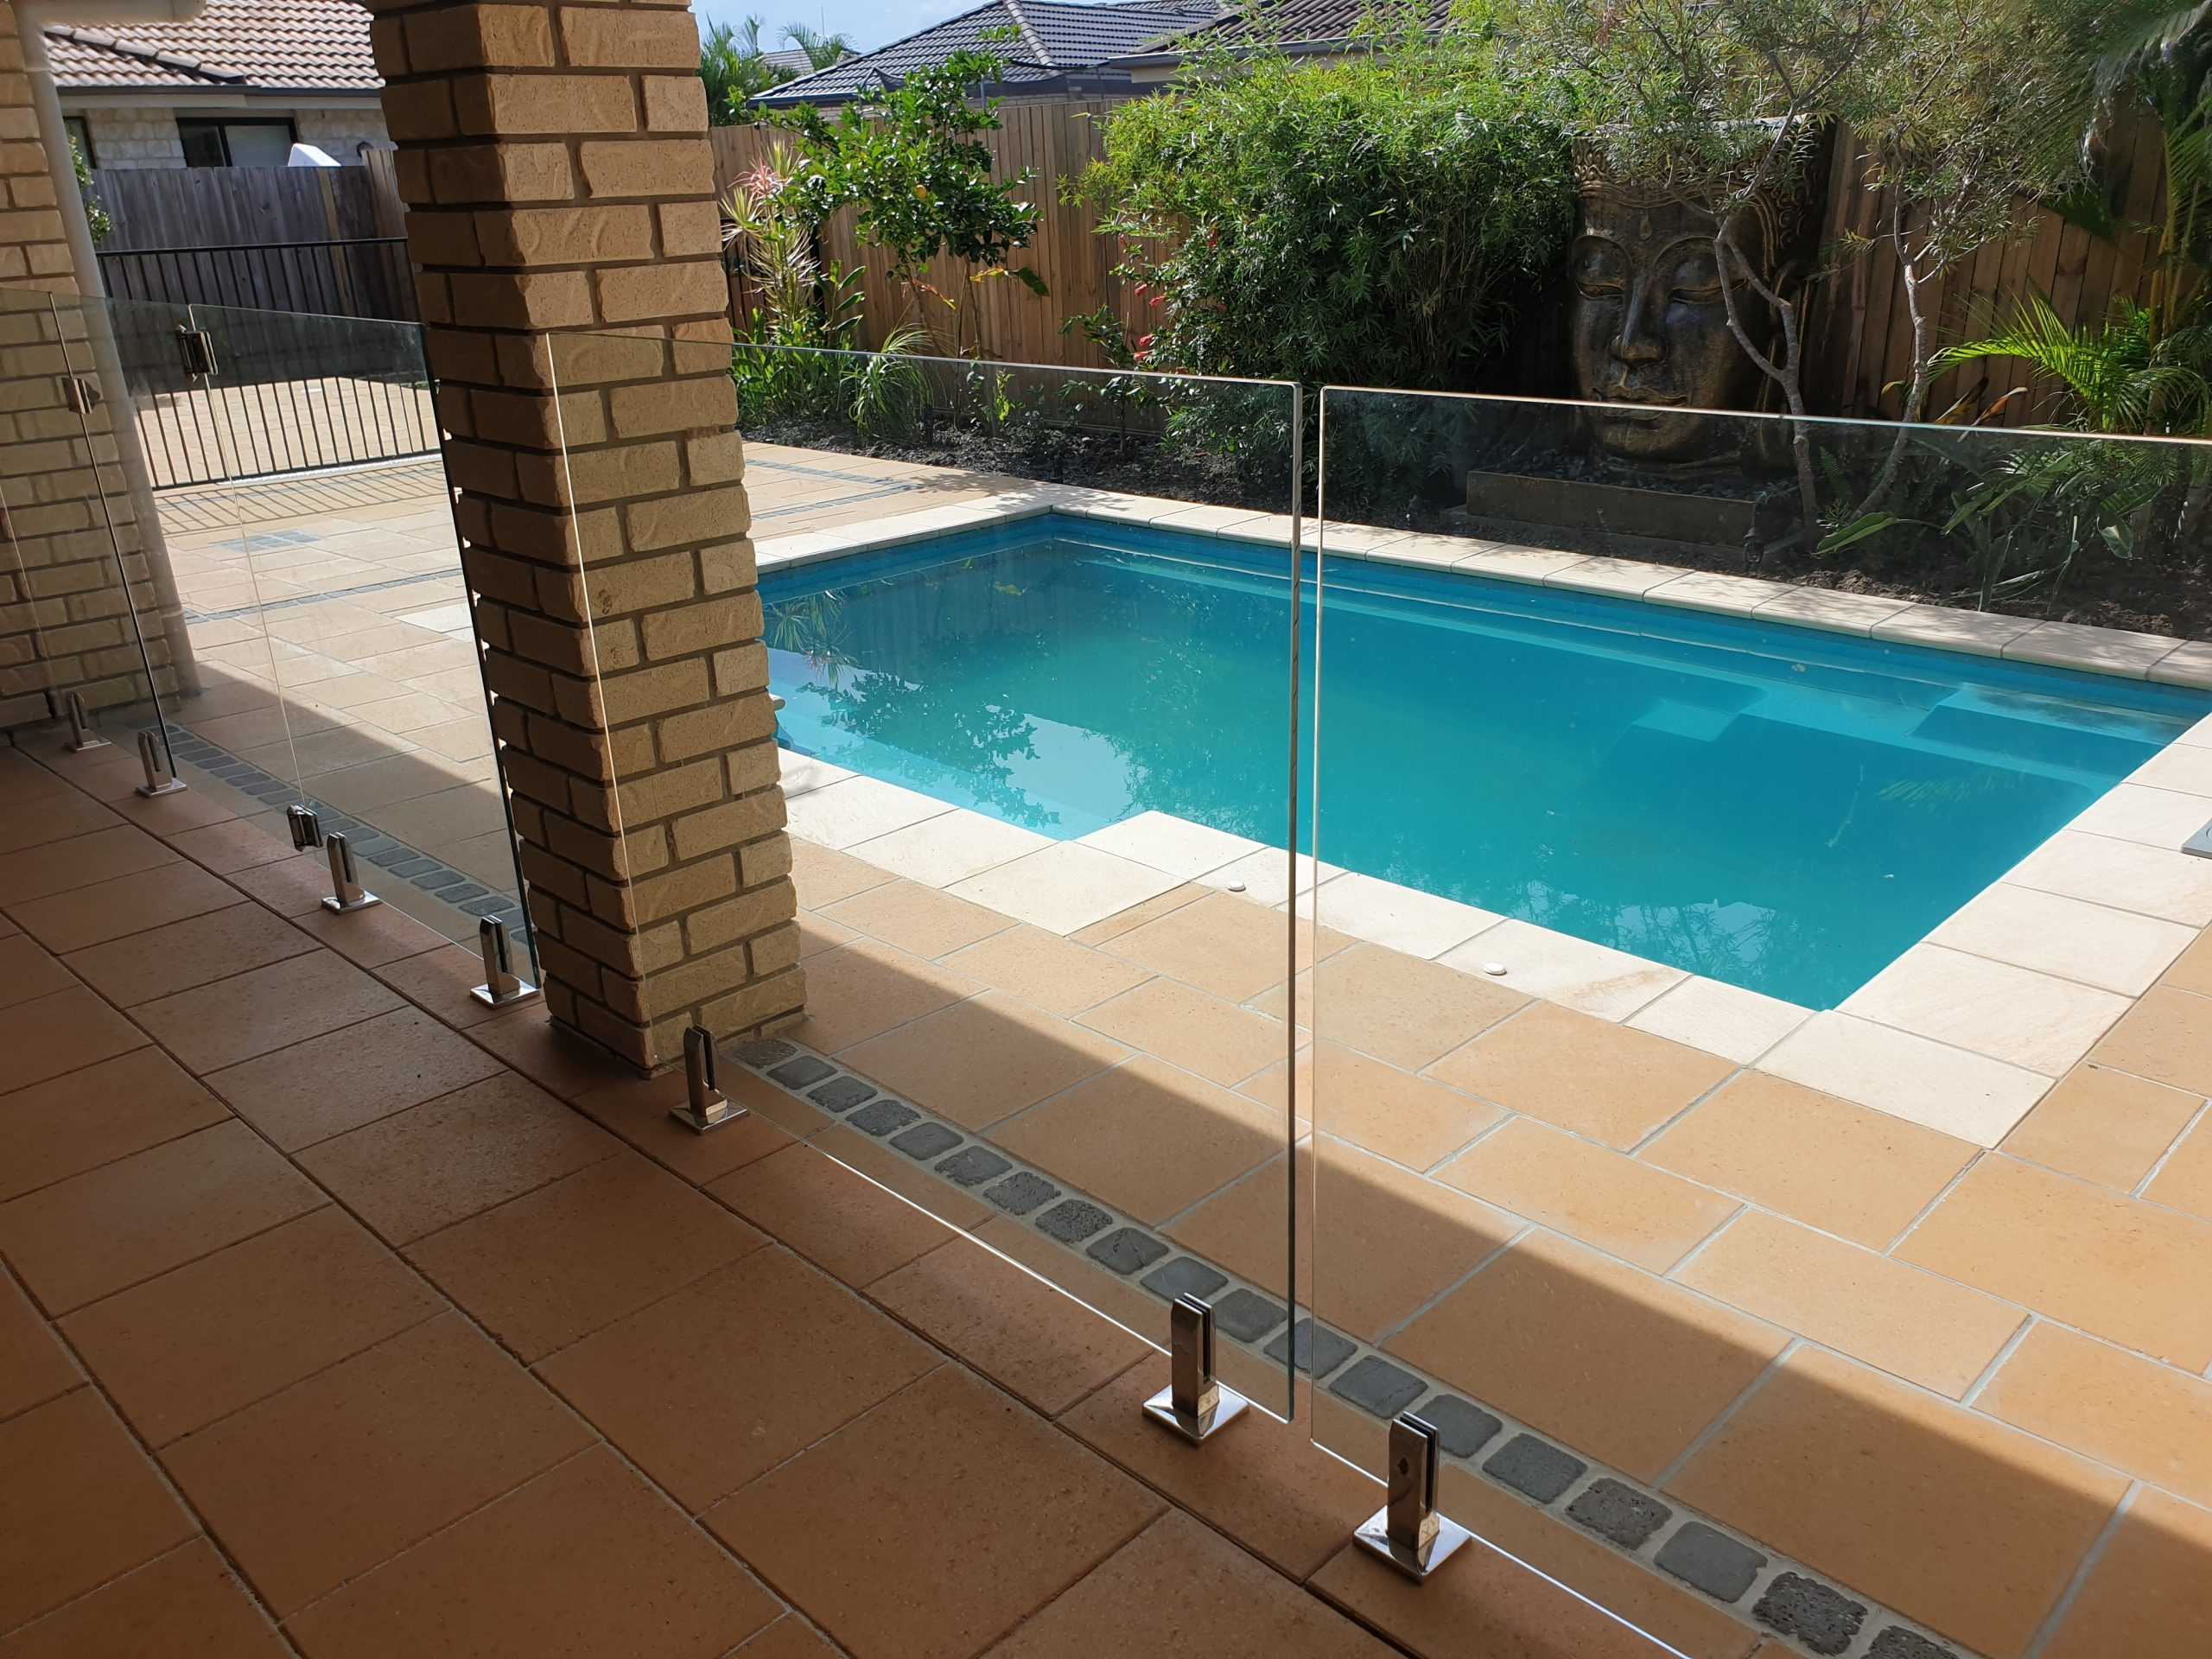 Paving around a swimming pool, with retaining wall and garden